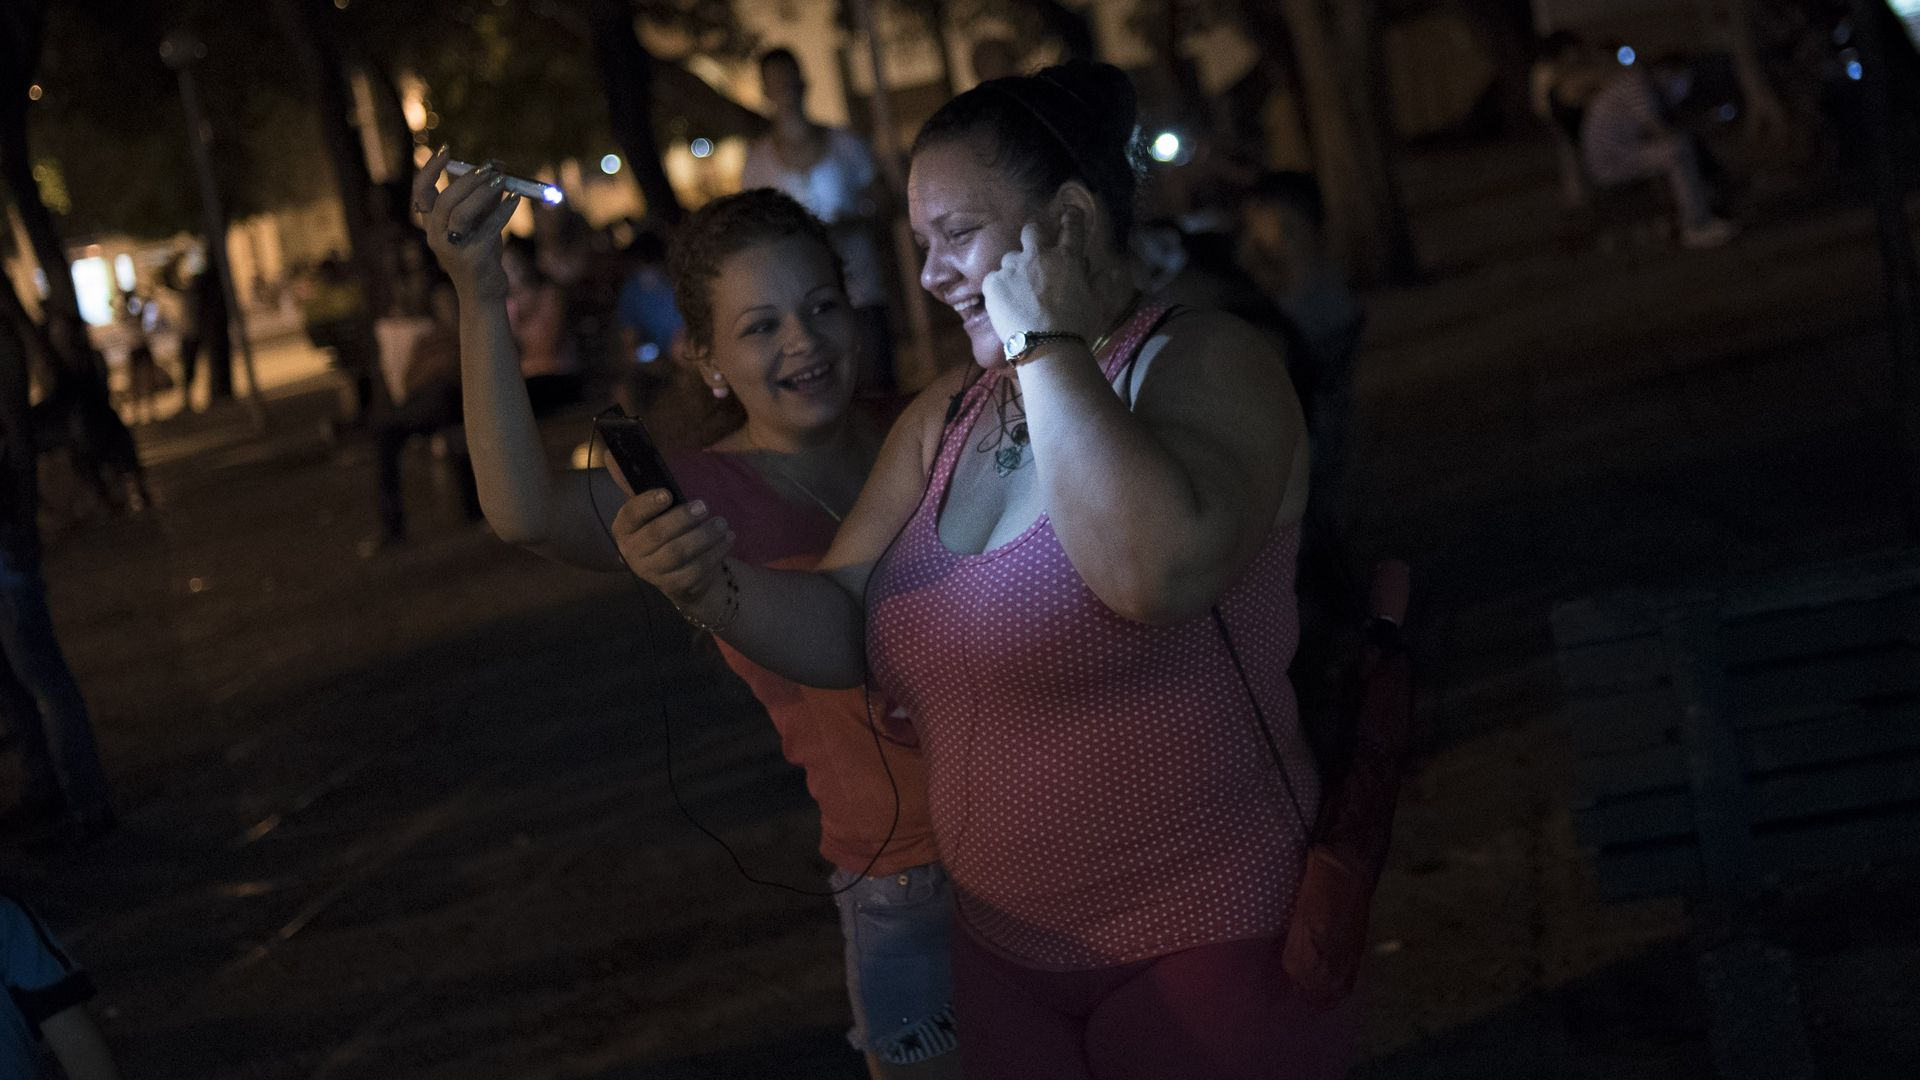 A Cuban woman uses her mobile phones to connect to the internet and speak with her relatives abroad